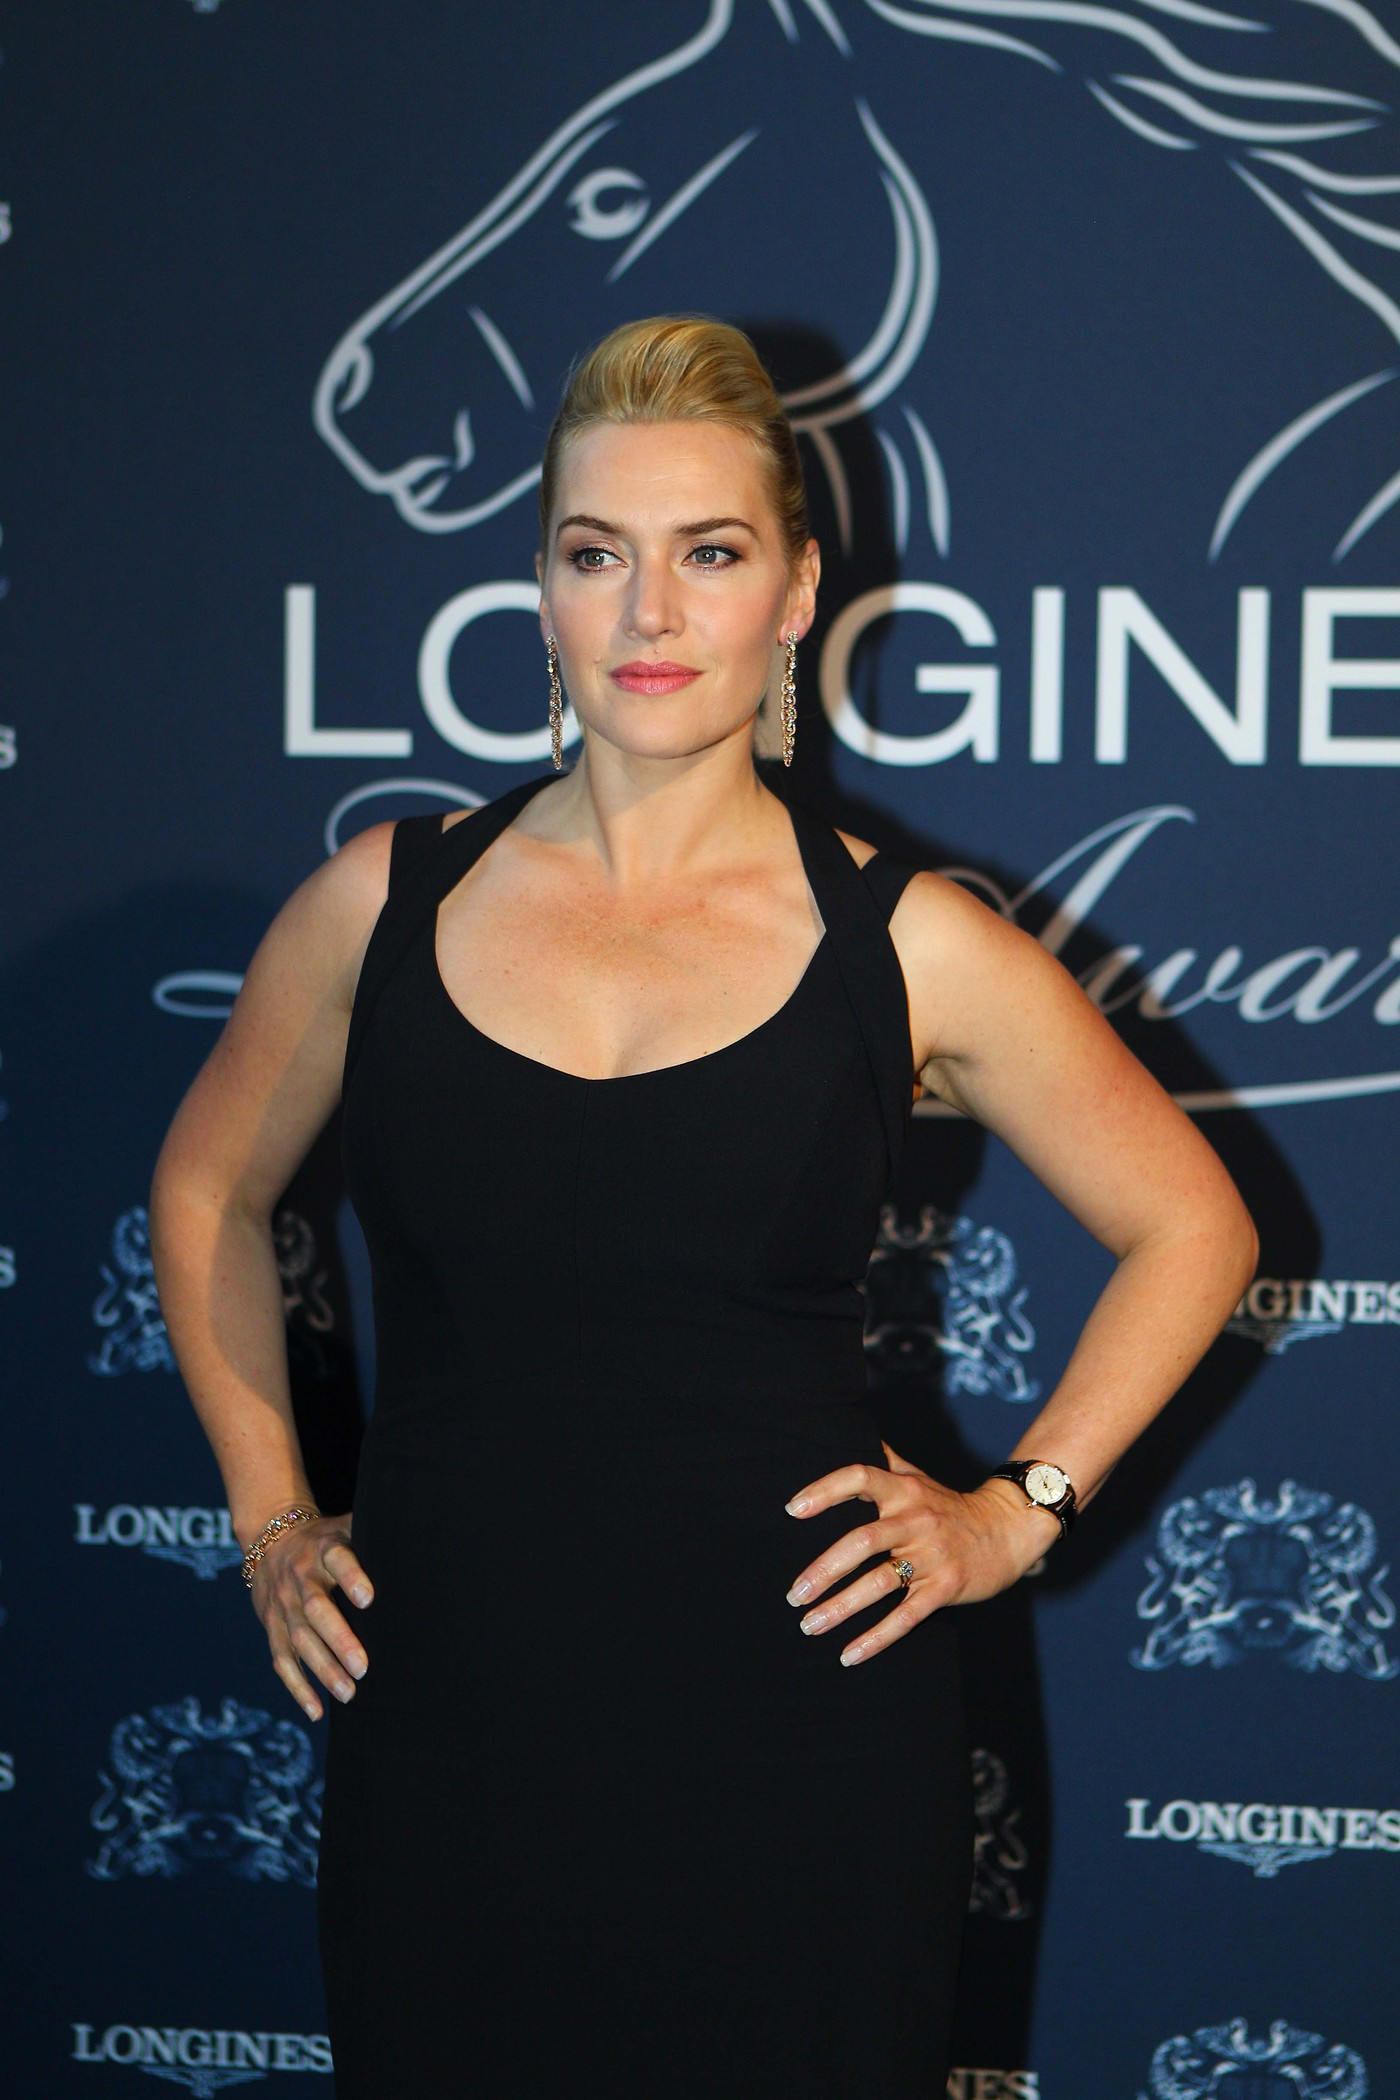 Longines Flat Racing Event: Longines Ladies Awards 2014 – Passion and elegance rewarded 1